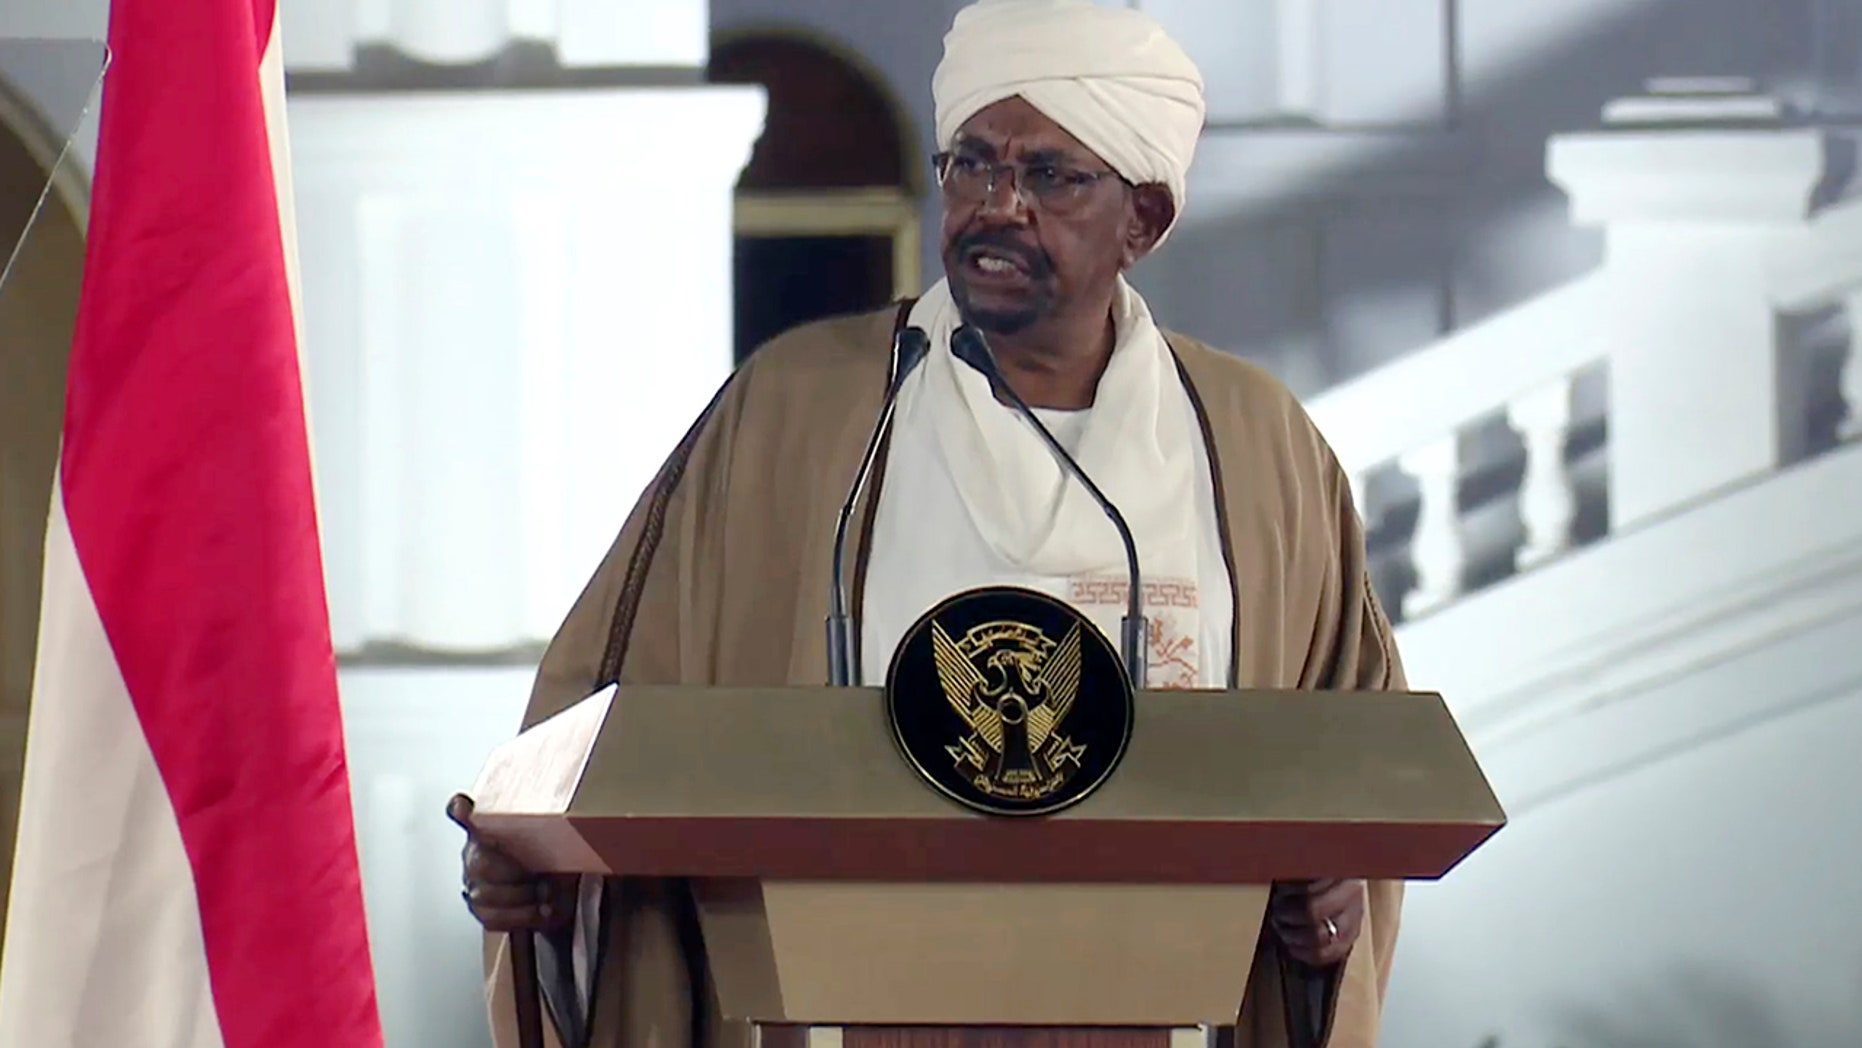 FILE - In this file image taken from video, Sudan's President Omar al-Bashir speaks at the Presidential Palace, Friday, Feb. 22, 2019, in Khartoum, Sudan. Tens of thousands of Sudanese were making their way to the center of the country's capital on Thursday, April 11, 2019, cheering and clapping in celebration as two senior officials said the military had forced longtime autocratic President Omar al-Bashir to step down after 30 years in power.(AP Photo/Mohamed Abuamrain, File)